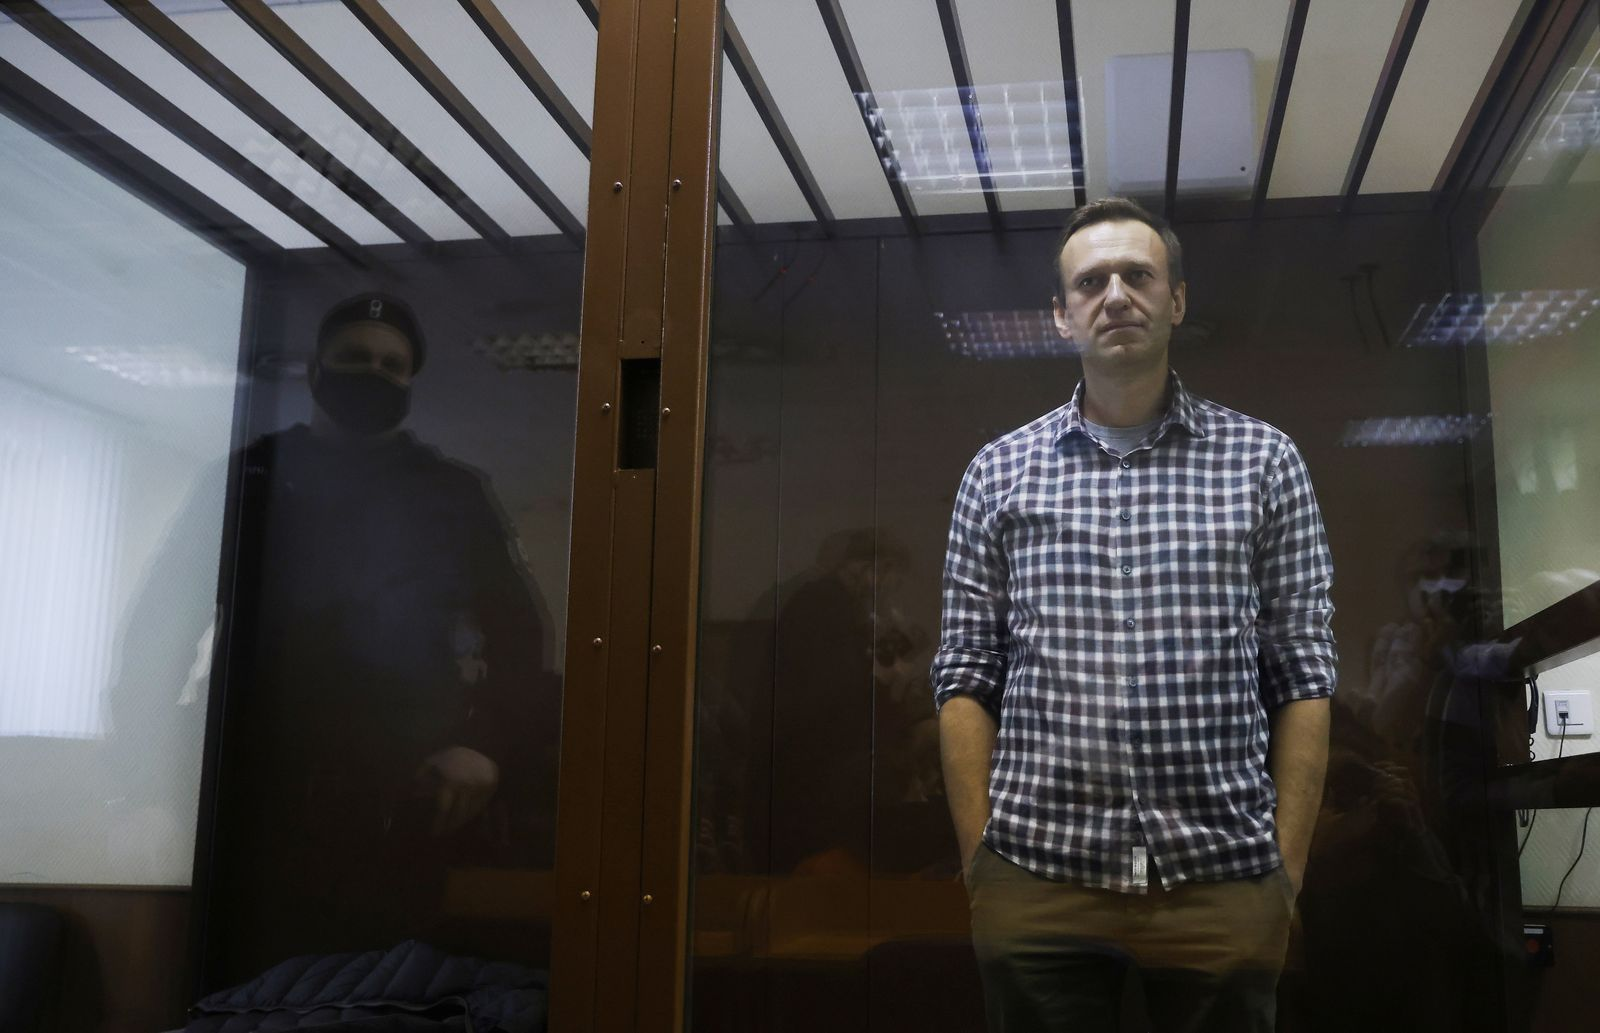 Russian opposition leader Alexei Navalny hearing to consider an appeal against an earlier court decision to change his suspended sentence to a real prison term